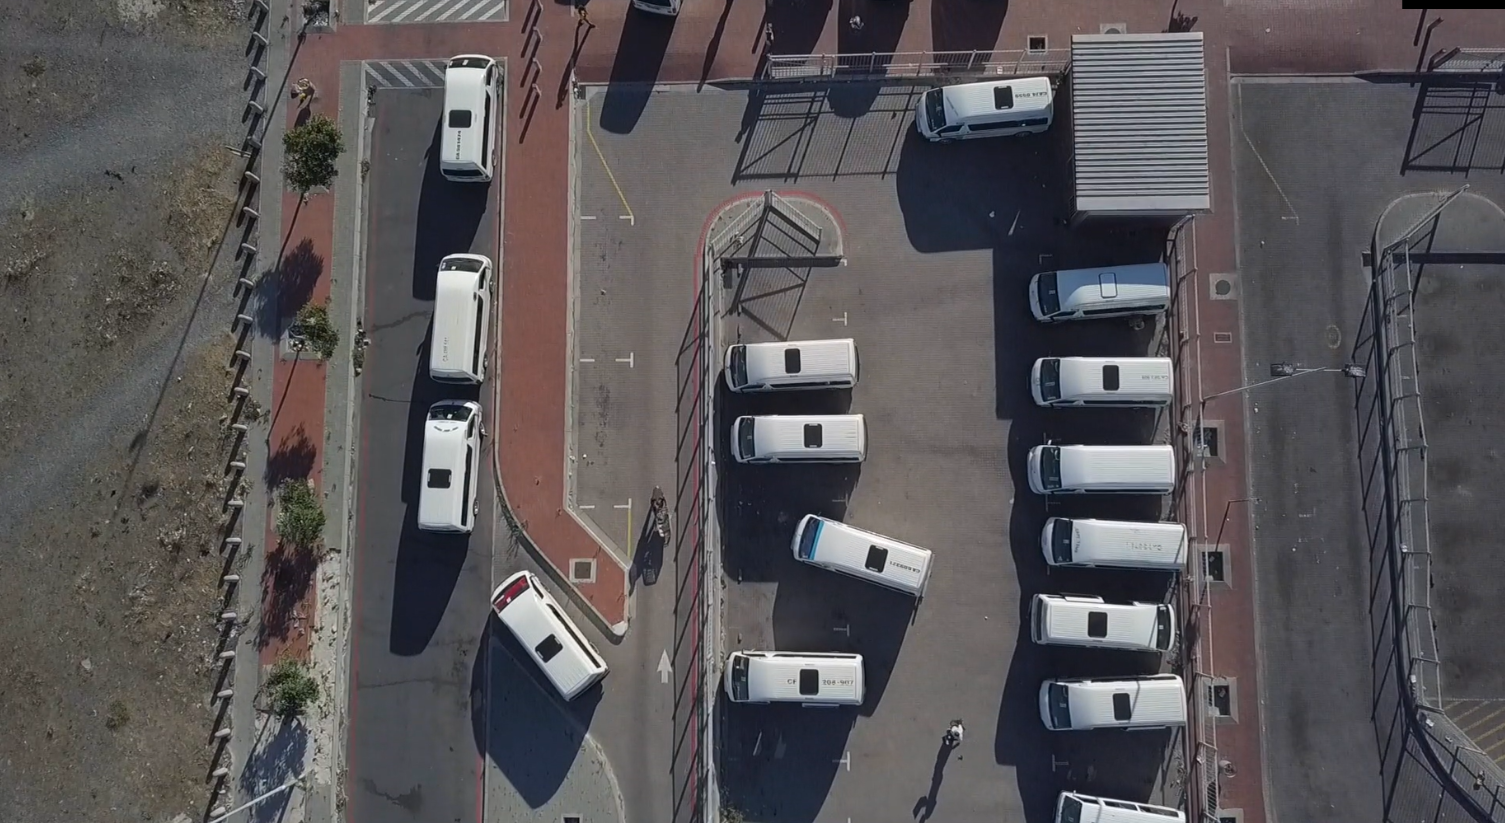 Improving the Standard Owner Target Paratransit Business Model in South Africa